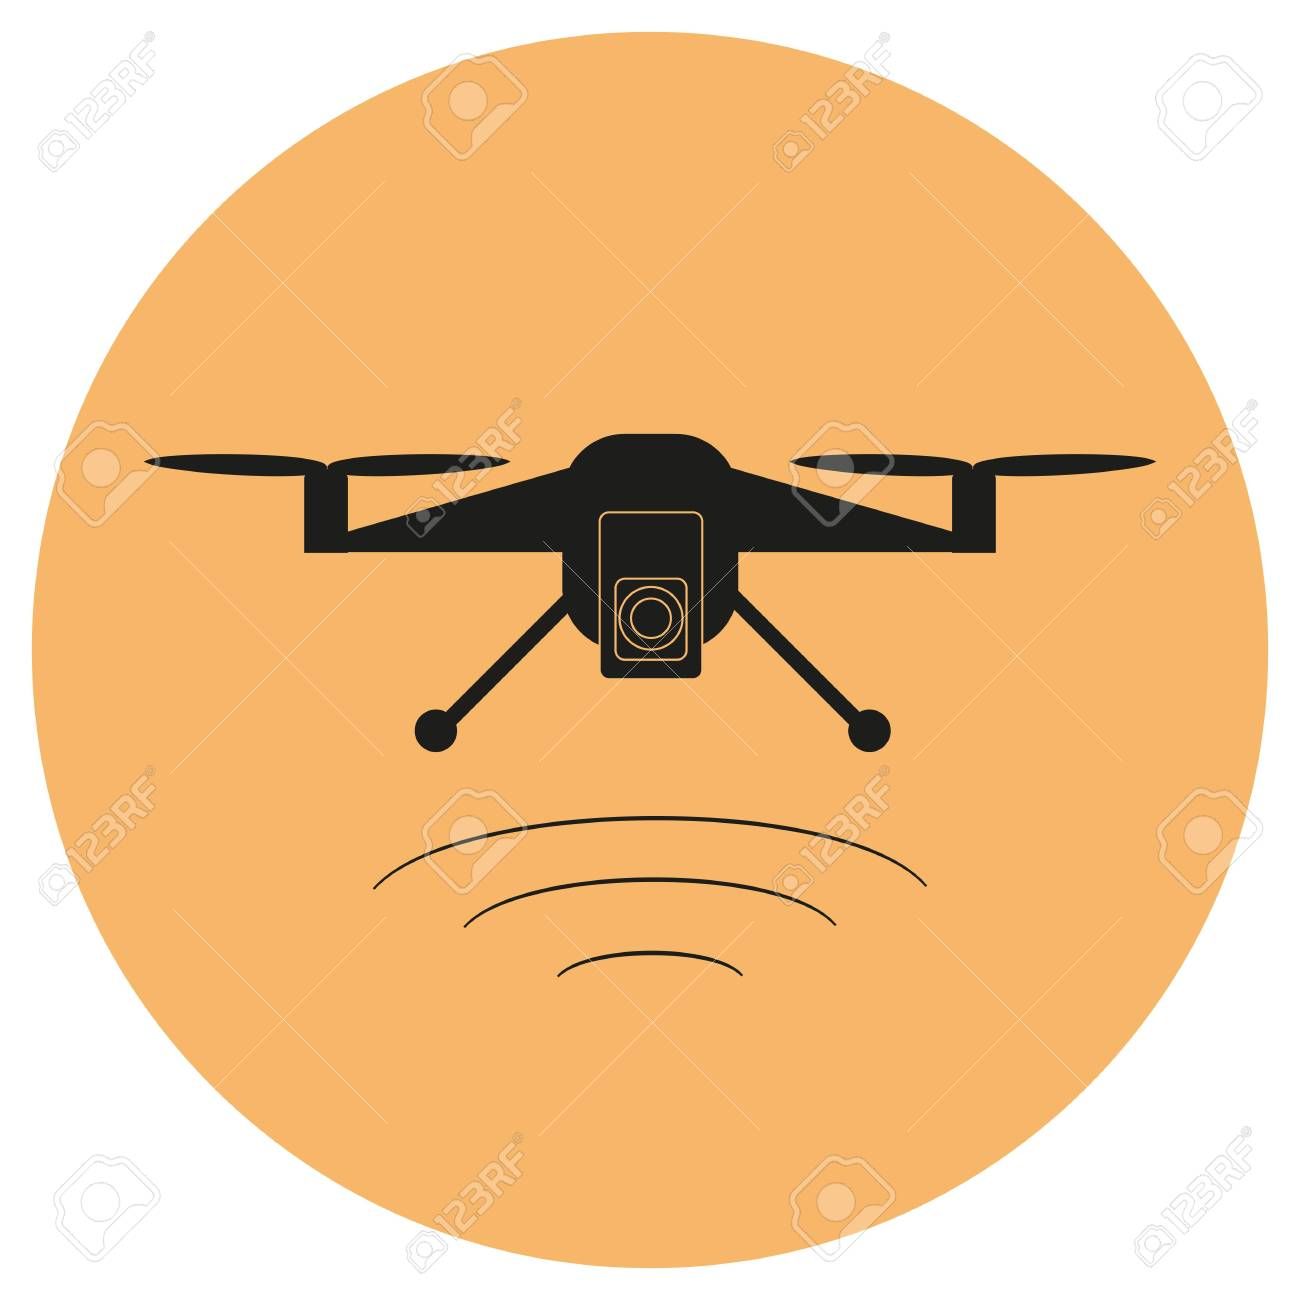 Drone With A Camera Taking Photography Or Video Recording Black Icon On Isolated Background